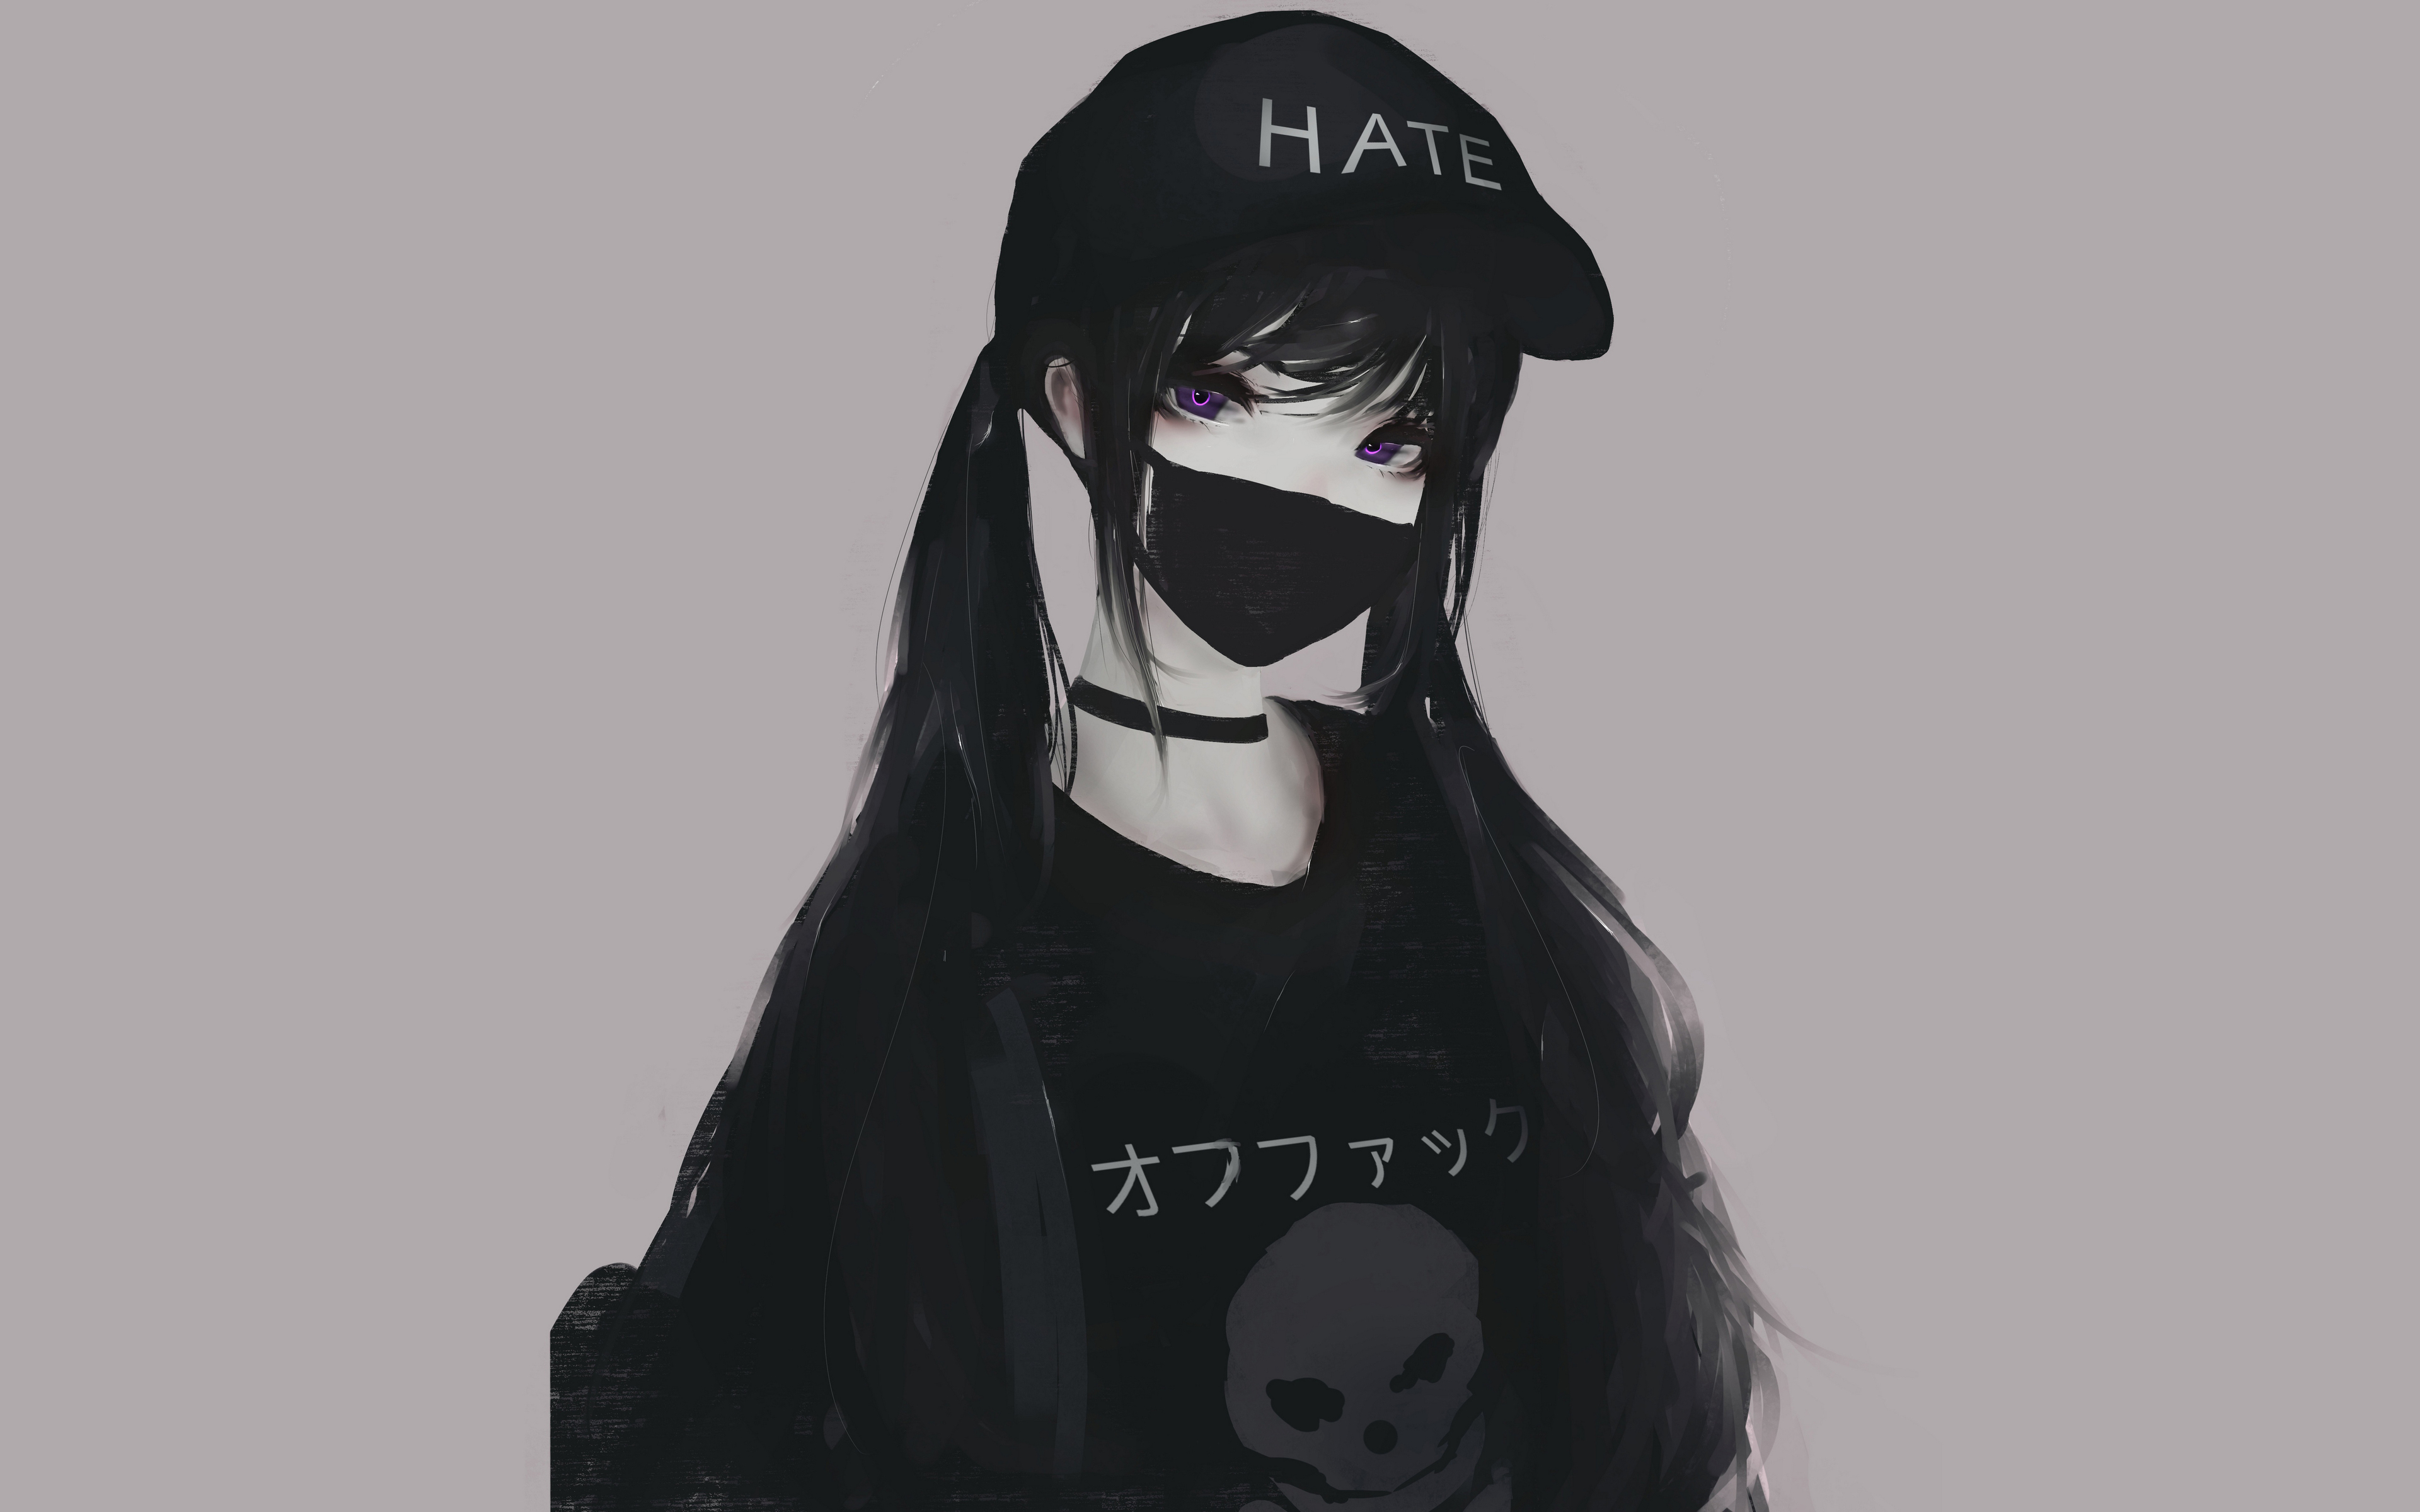 https://hdqwalls.com/download/anime-girl-face-mask-purple-eyes-twintails-hate-5k-79-3840x2400.jpg